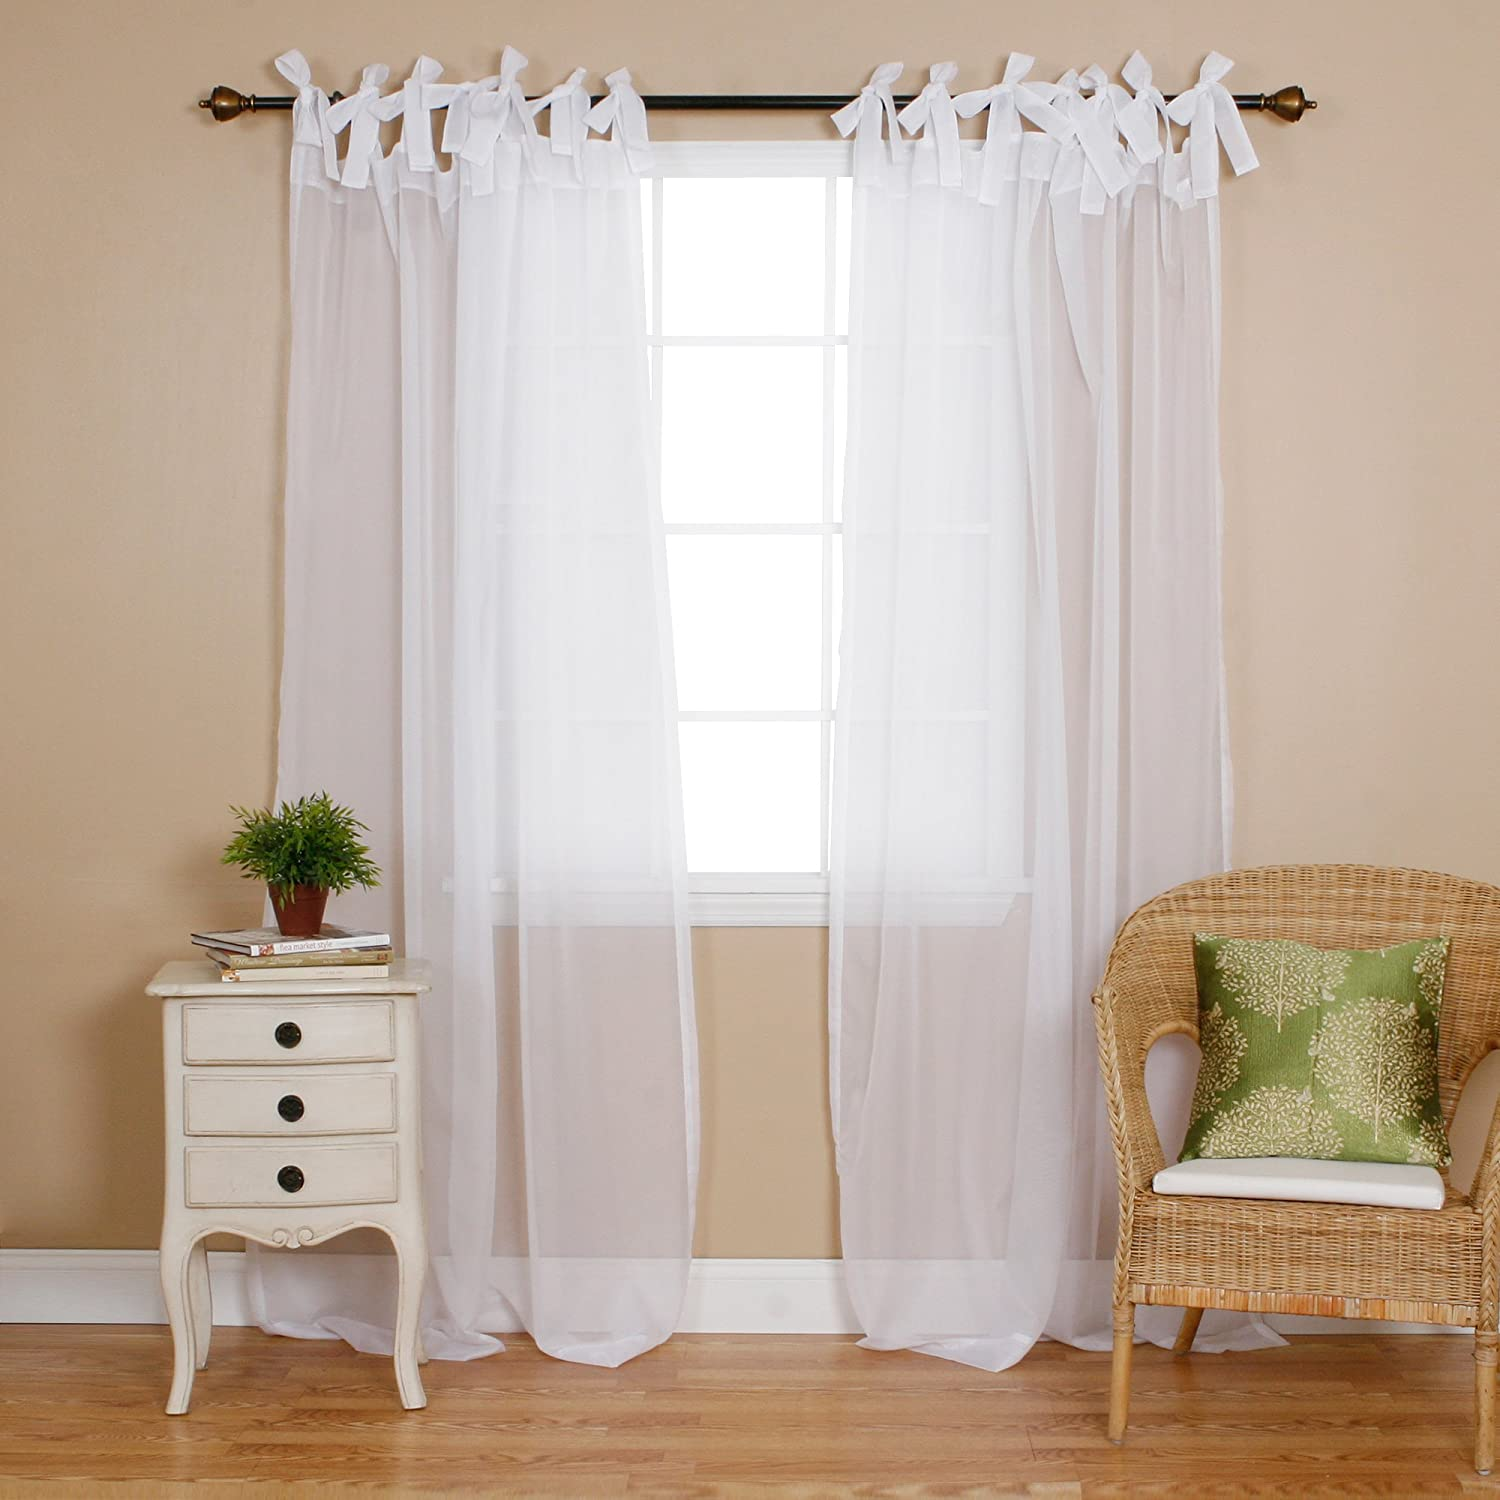 "Best Home Fashion Sheer Voile Curtains - Tie Top - White - 56""W x 84""L"